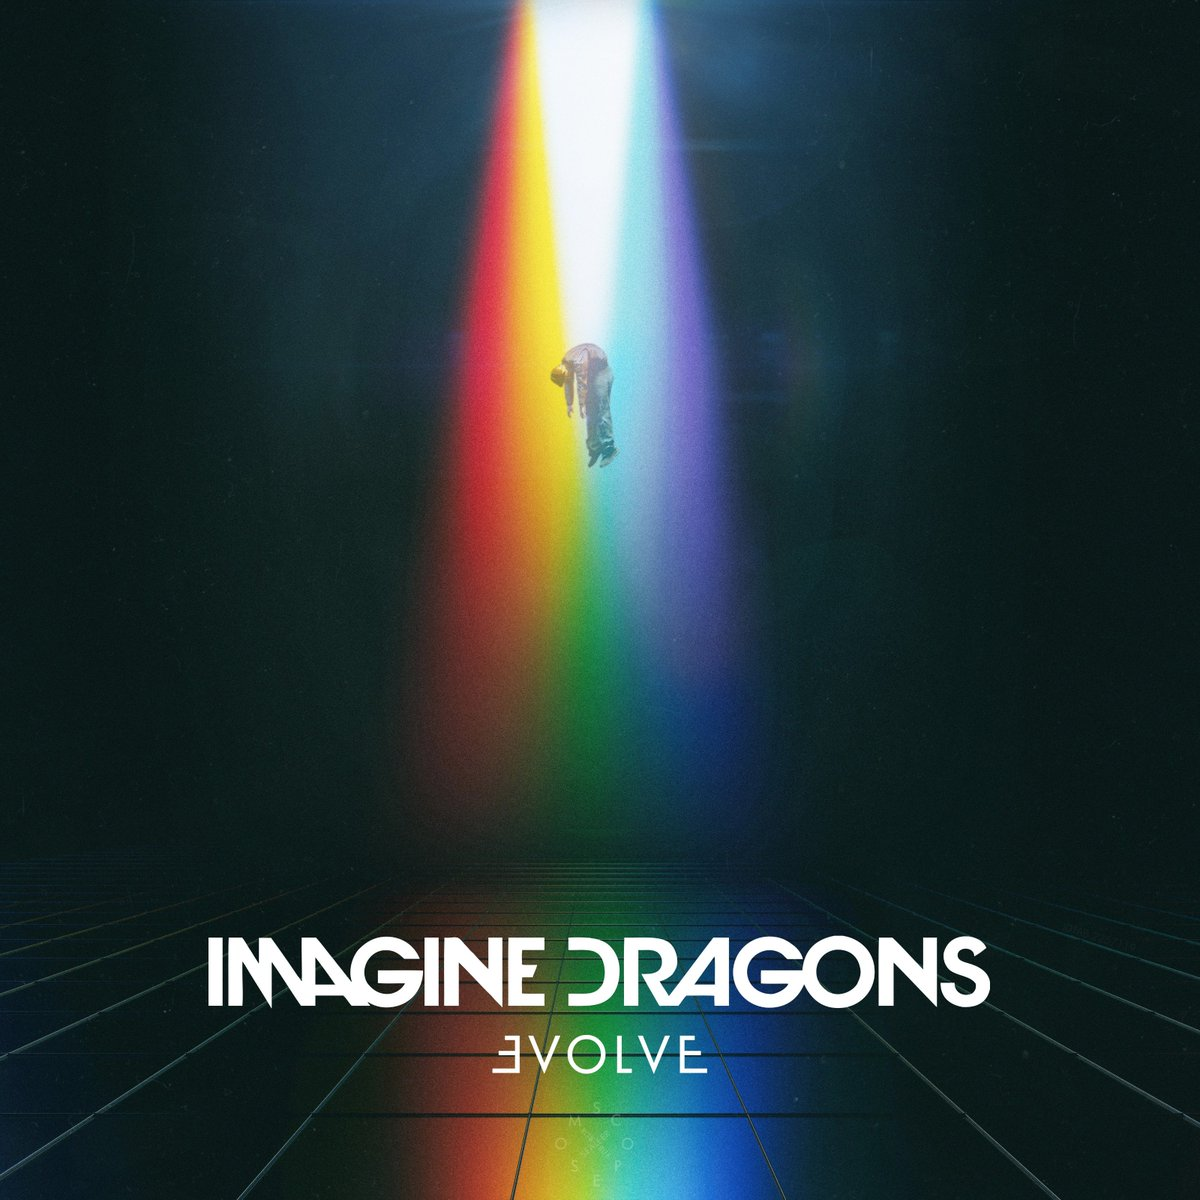 Mañana #ImagineDragonsEvolve https://t.co/FHhLuNXUuS https://t.co/ELpi...